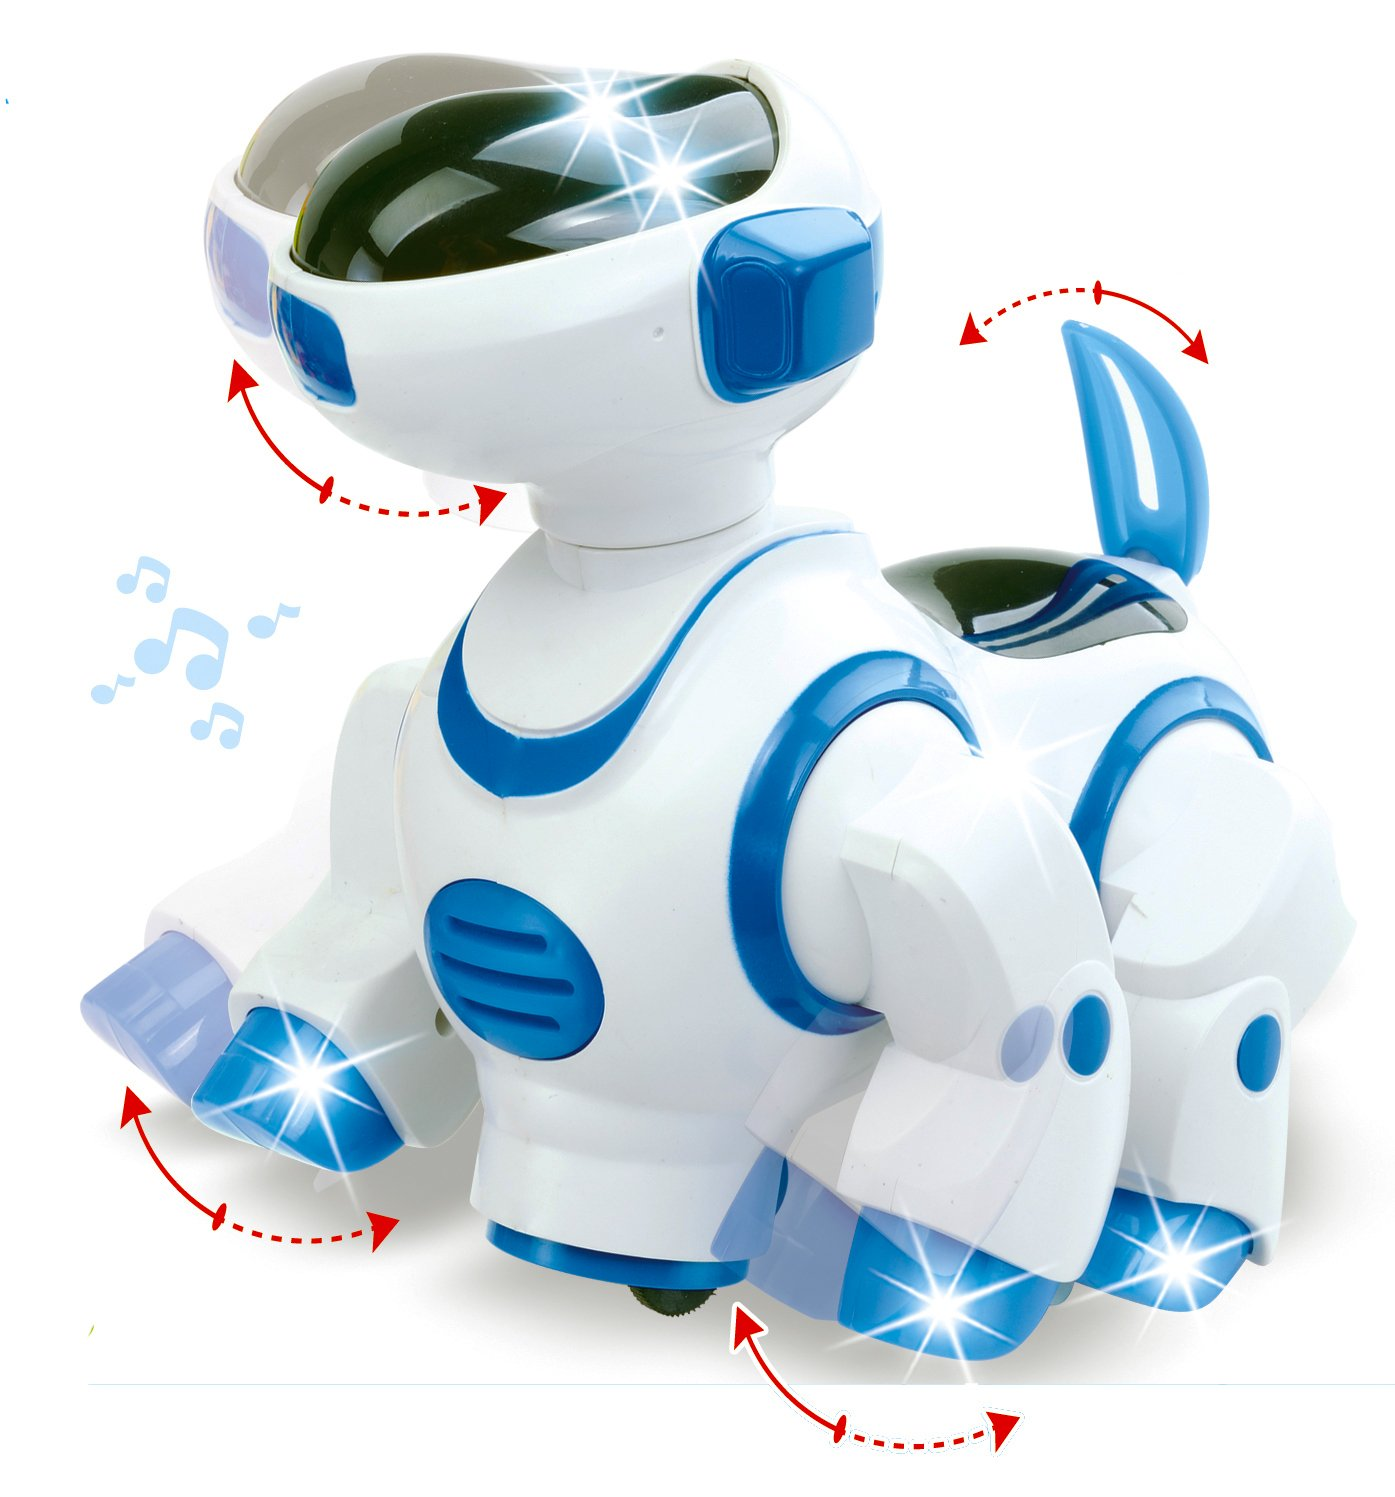 Liberty Imports Smart Robot Dog Toy   Bump and Go Electronic Pet Puppy   Walks, Dances with Lights and Sounds for Kids, Boys, Girls